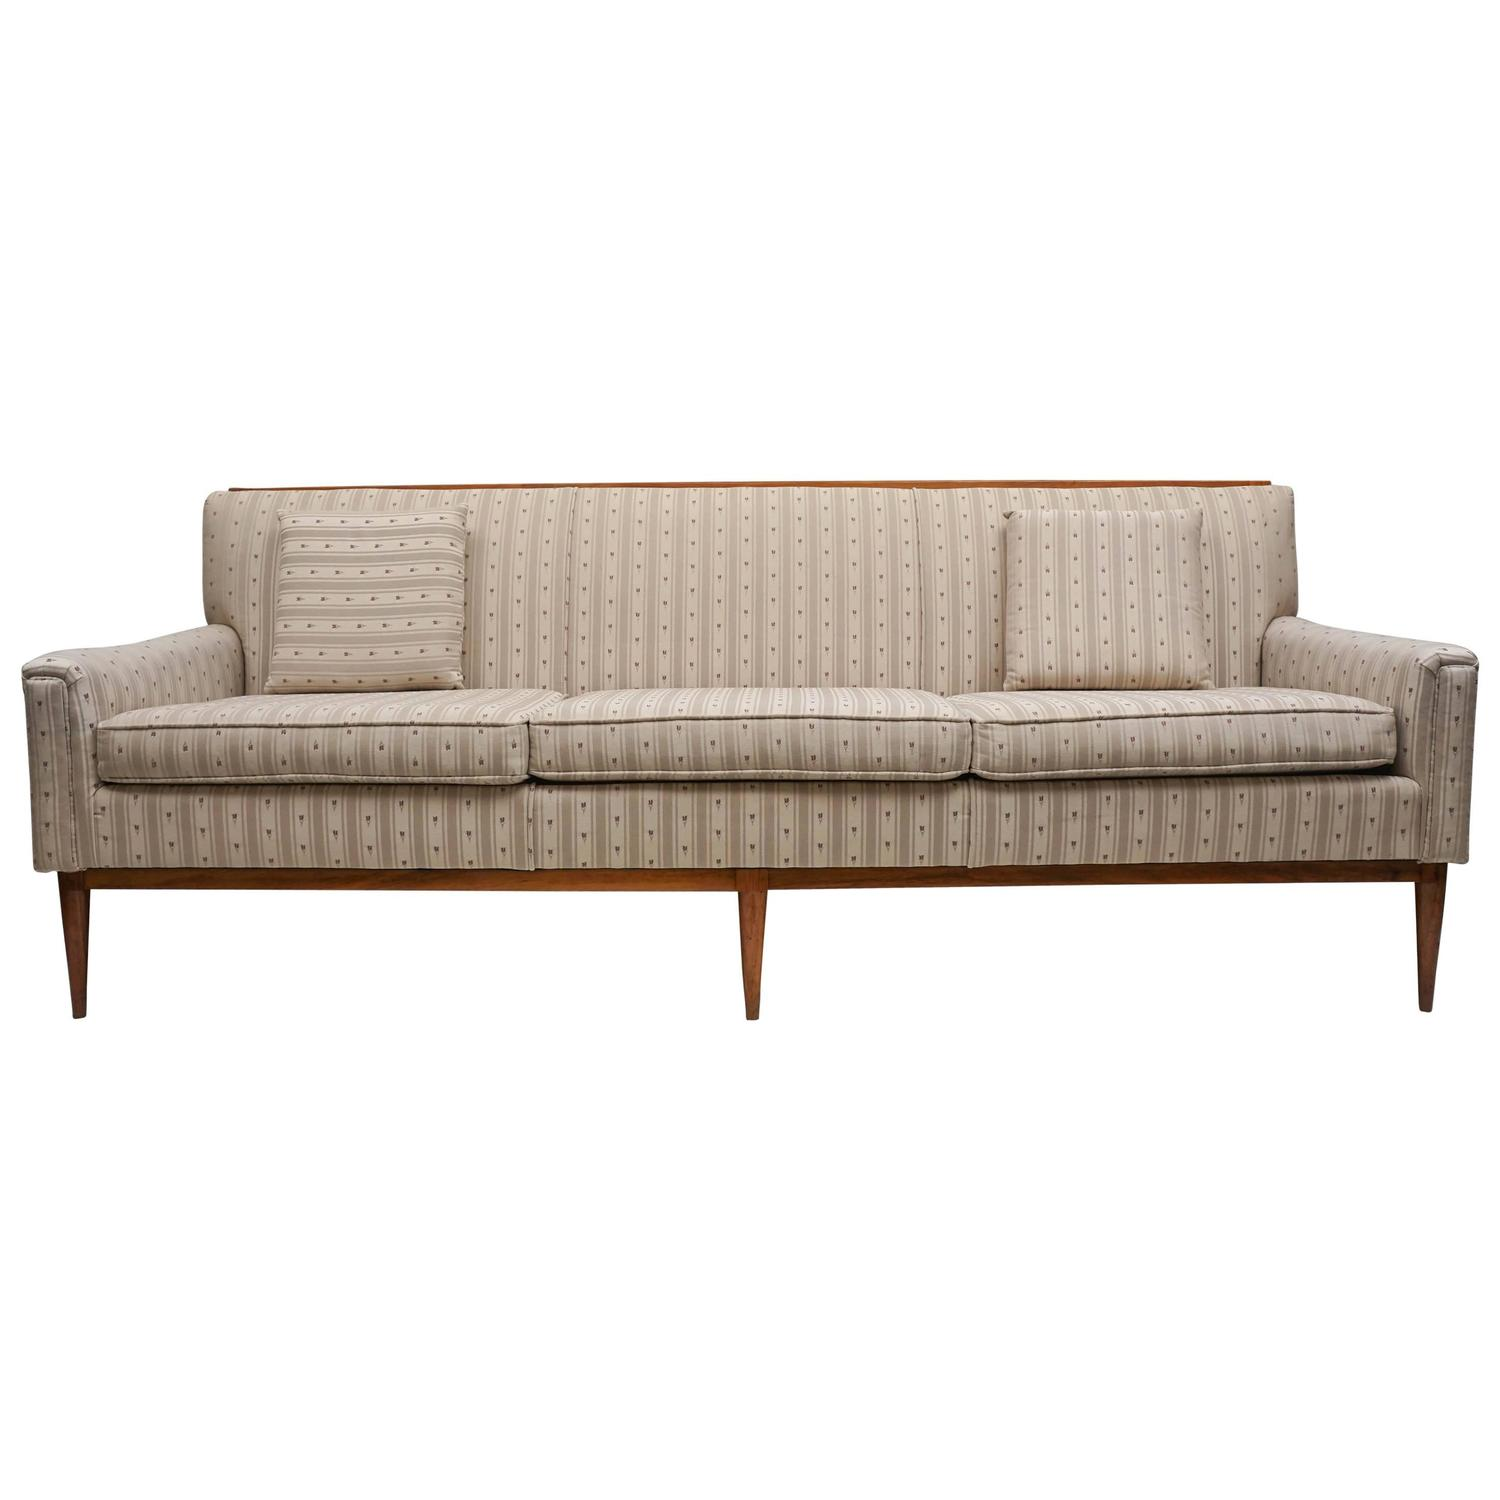 Small curved sofa or loveseat Italy 1950s at 1stdibs